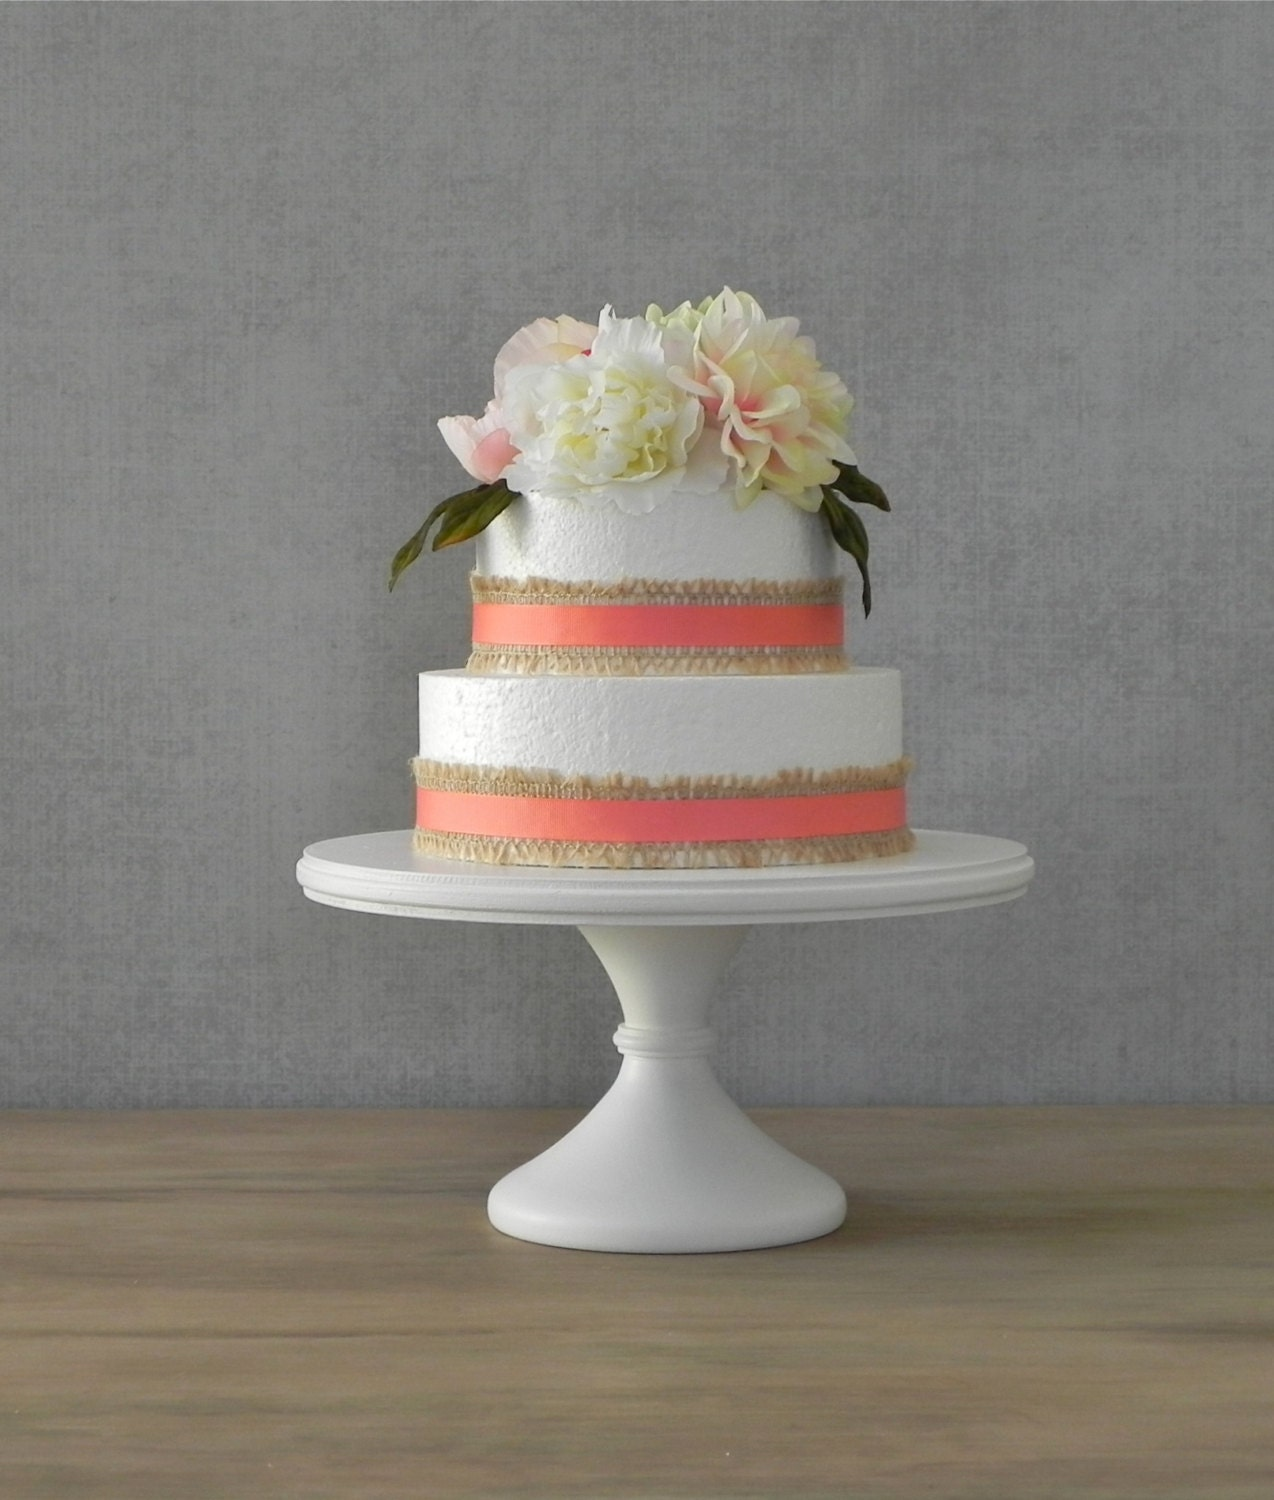 cupcake wedding cakes stands 14 cake stand wedding pedestal cupcake white cake stand 3234